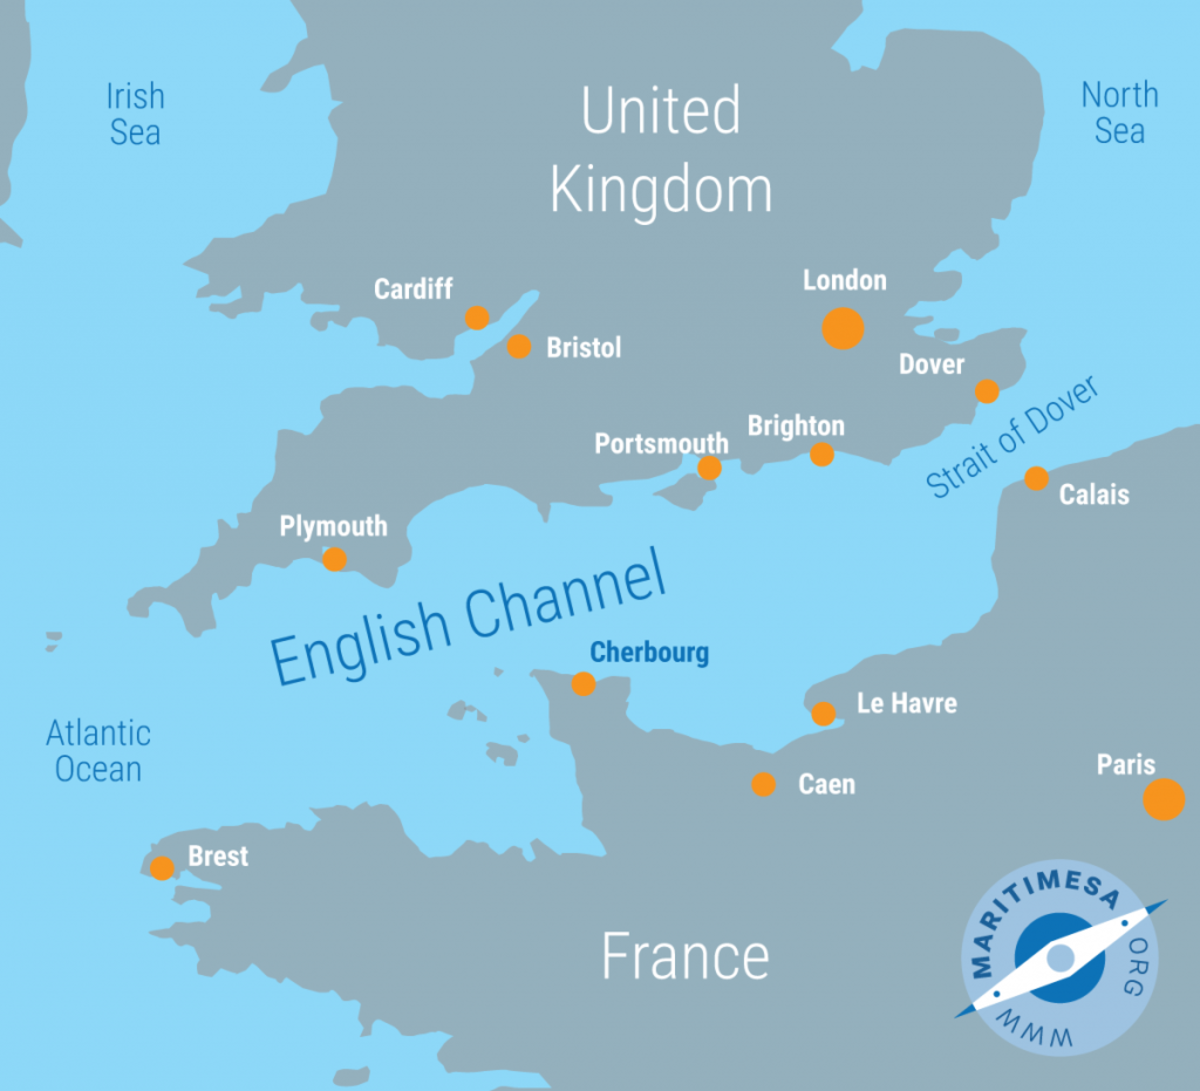 The lack of naval ports in France, as neither Cherbourg, nor Dunkirk, nor Caen, nor Le Havre were sufficiently developed or even built in the 18th century, posed a severe problem for the French navy's operation in the Channel.